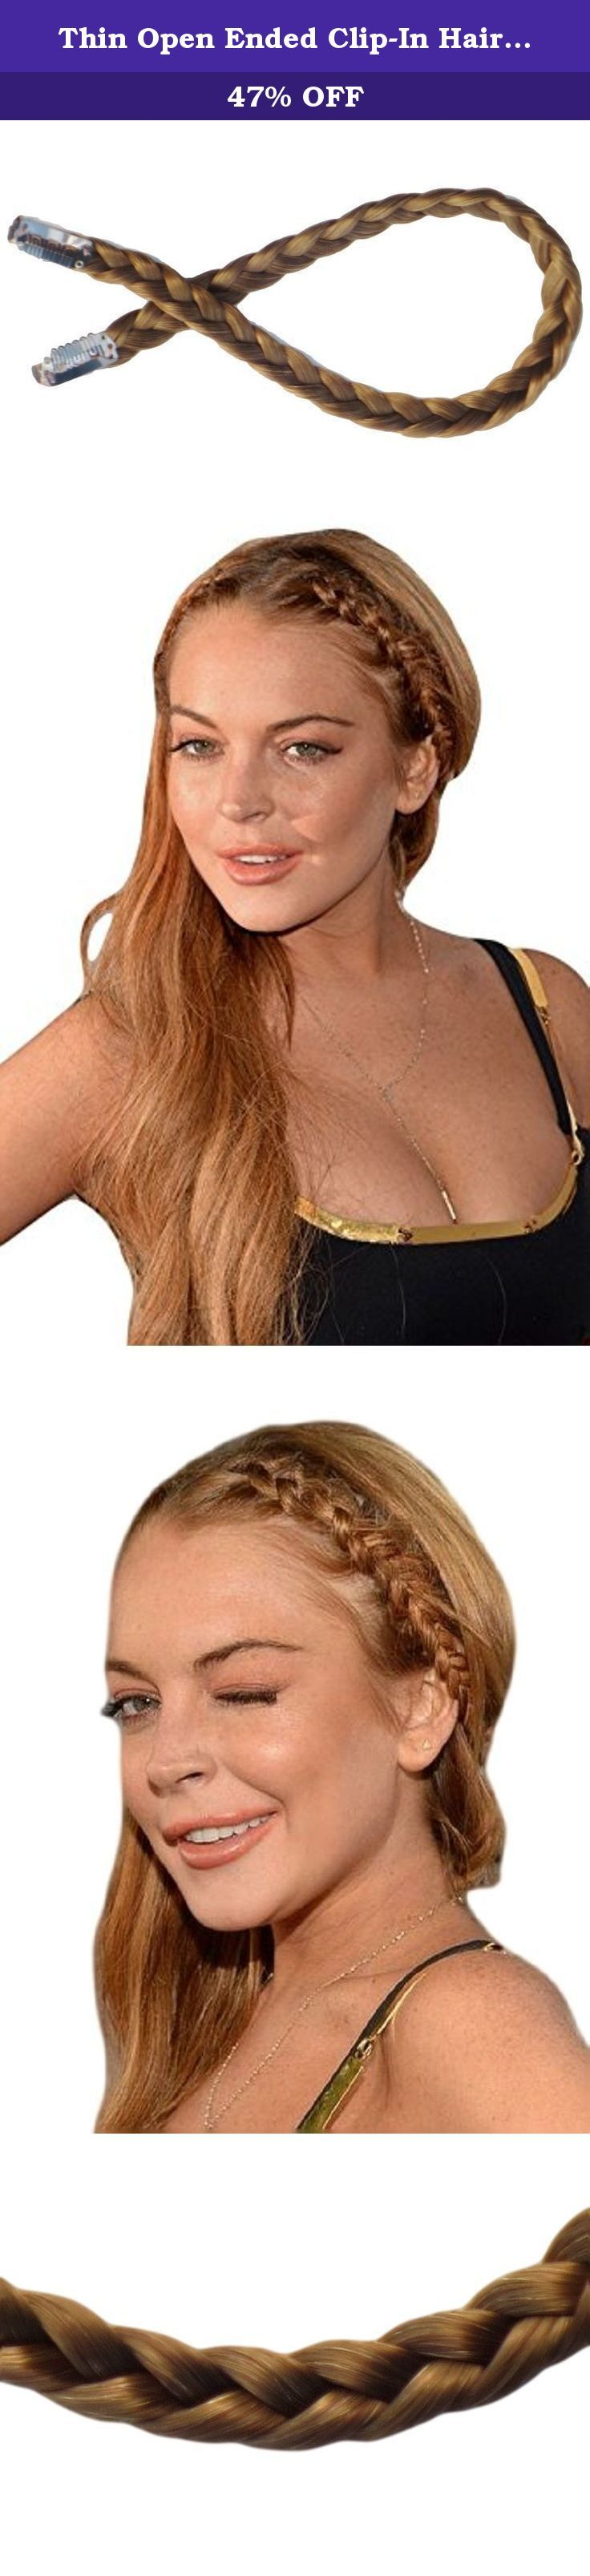 Thin Open Ended Clip-In Hair Braid In Warm Blonde Auburn Colour Synthetic. Following on from the Chunky Braid we now introduce the open ended Thin Braid, this wonderful product has two open ended clasps so you can create your own styles. Try styling it backwards for a unique take on a Fantasy style or go forwards for a more traditional look. As its open ended it gives you the possibility to mess around and play with dozens of different trends. It's versatile and can be easily be blended…